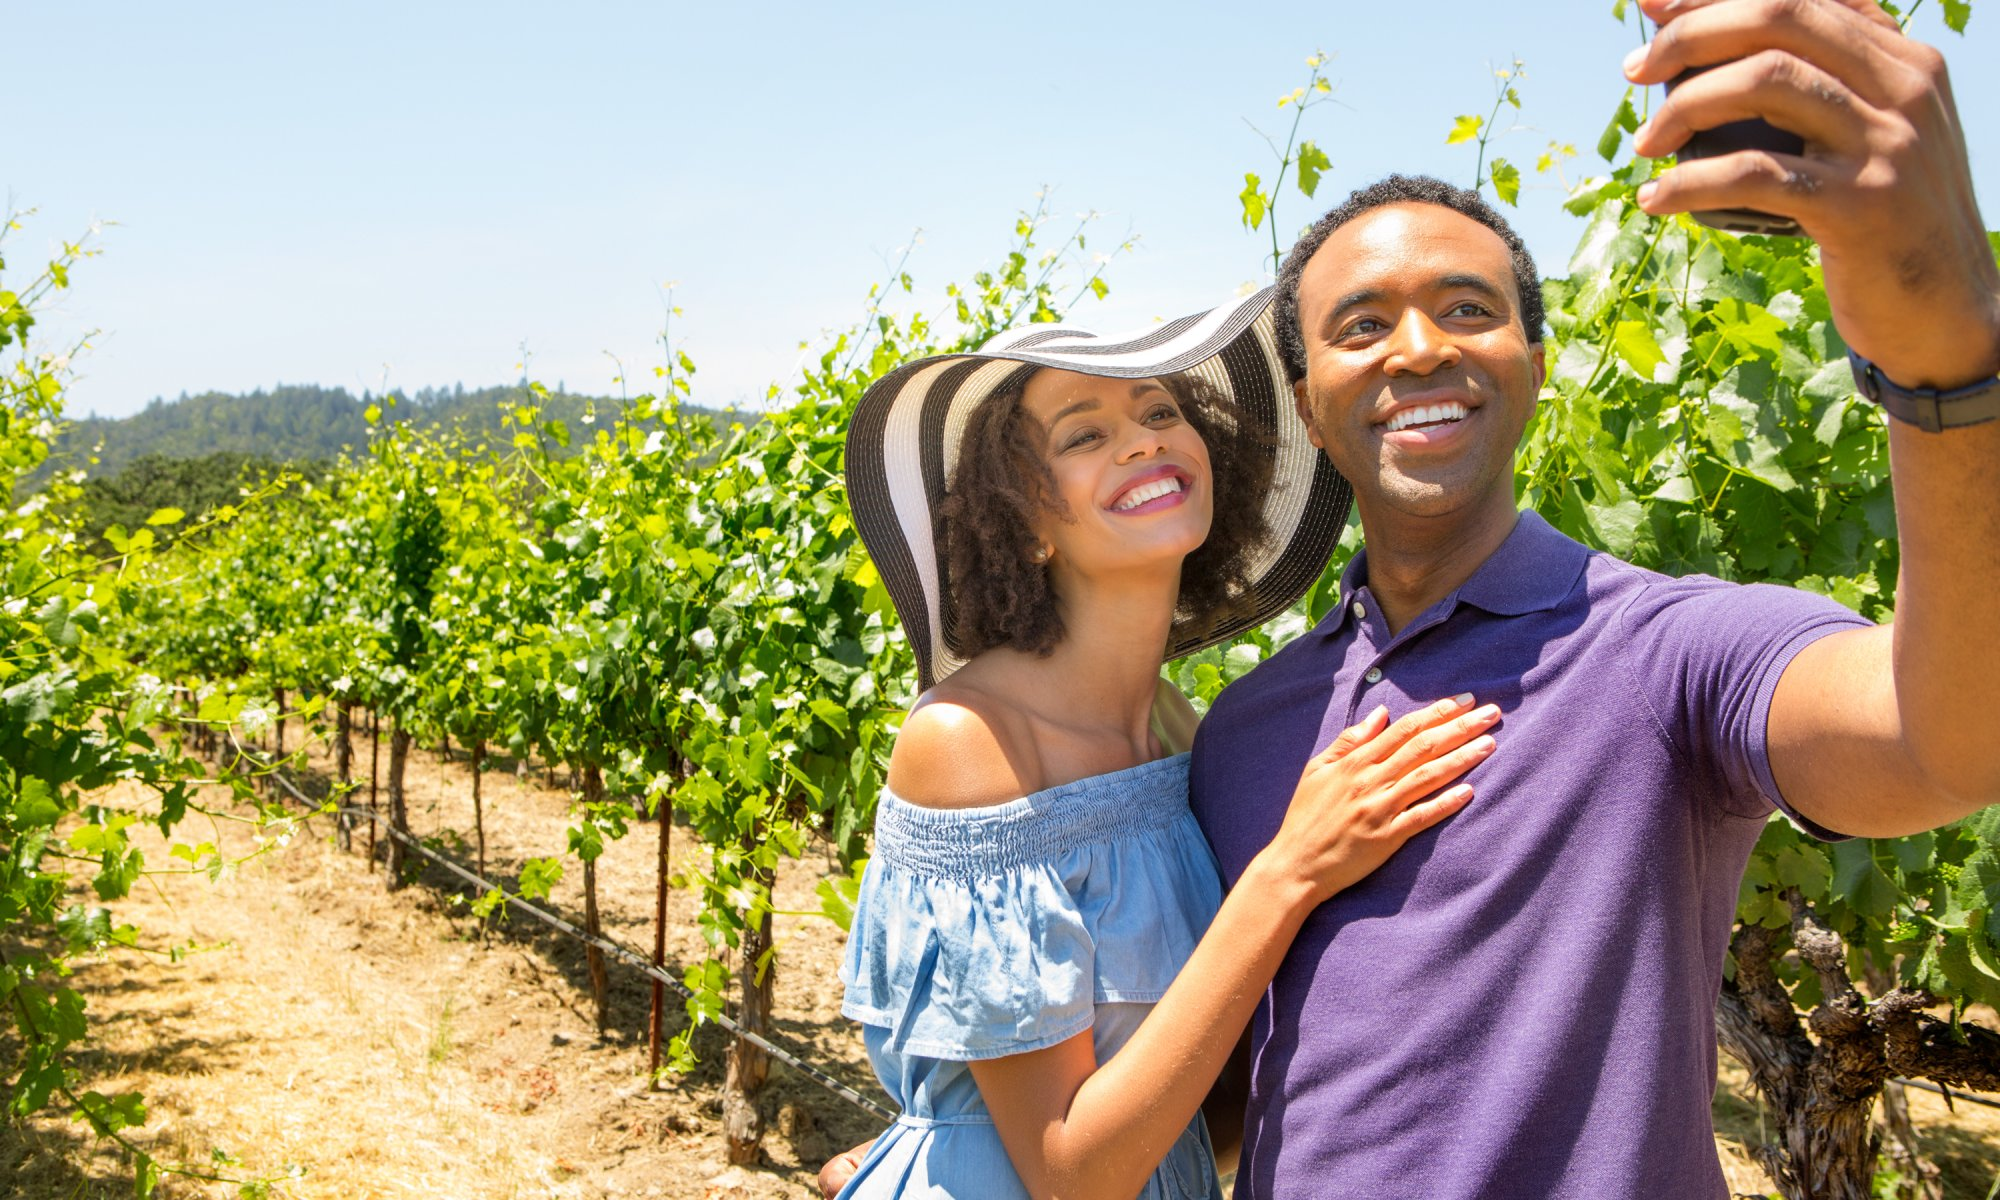 A couple take a selfie in a sunny, Napa Valley vineyard.